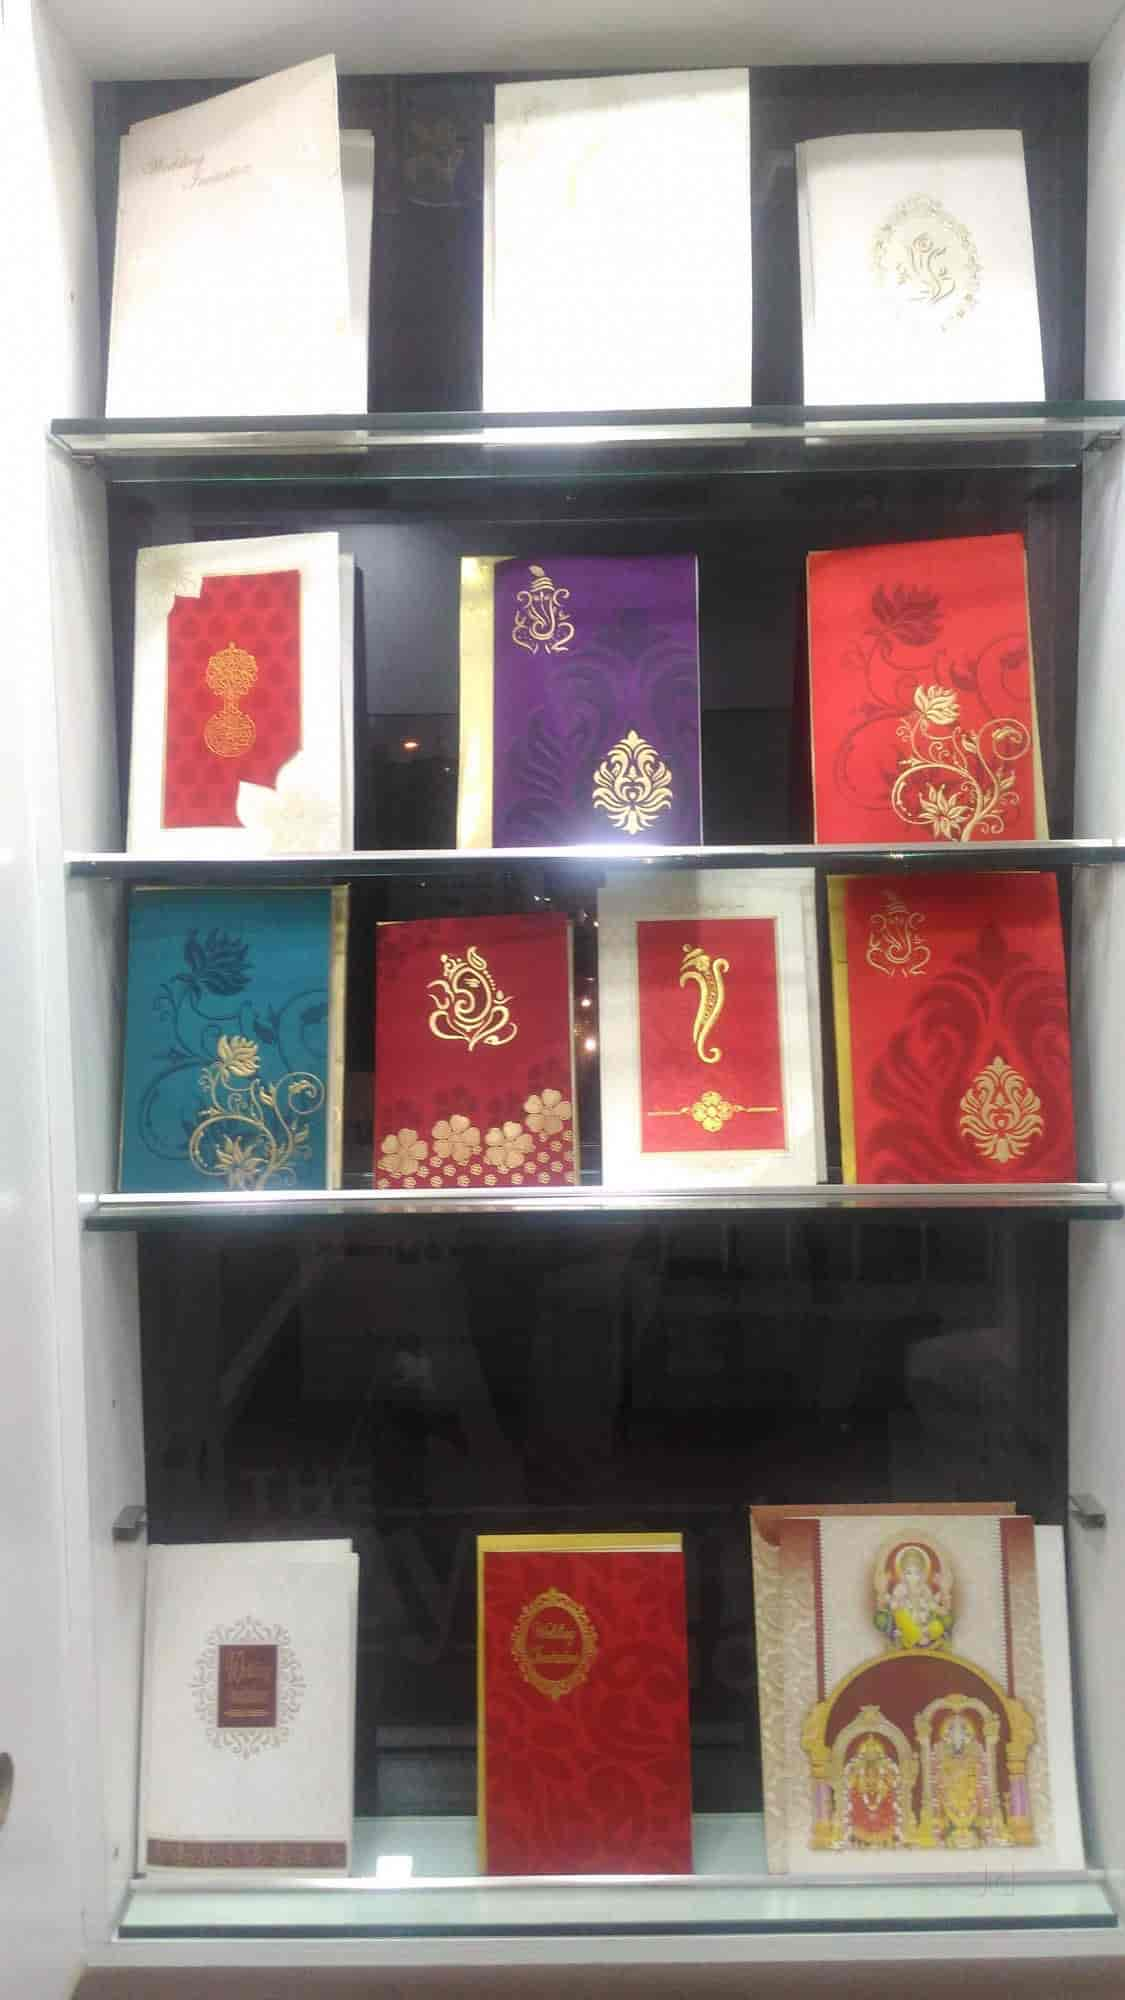 Olympic Cards Ltd - Wedding Card Dealers in Vellore - Justdial